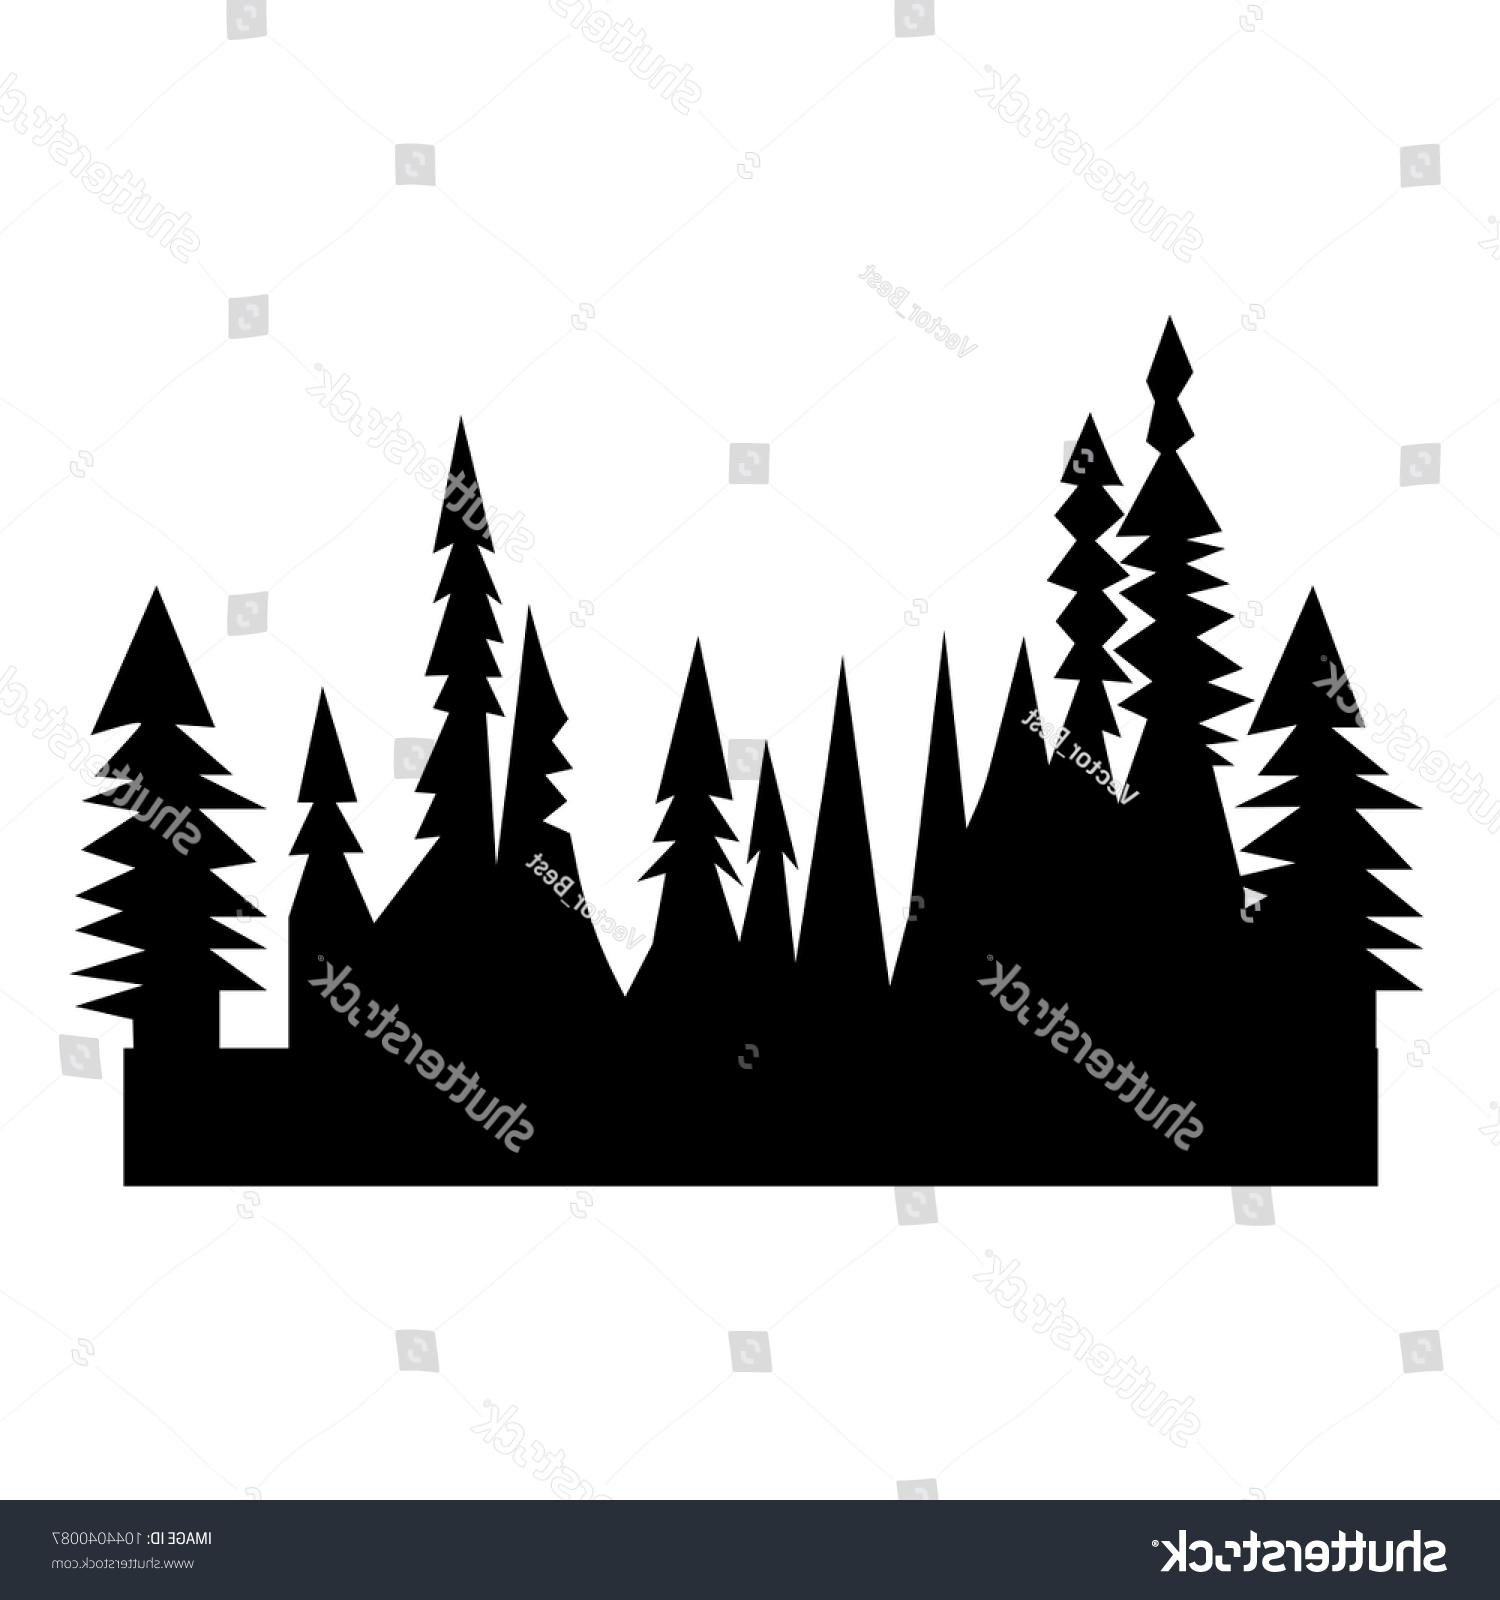 Tree line silhouette clipart vector image black and white stock Unique Treeline Silhouette Vector Library » Free Vector Art ... image black and white stock